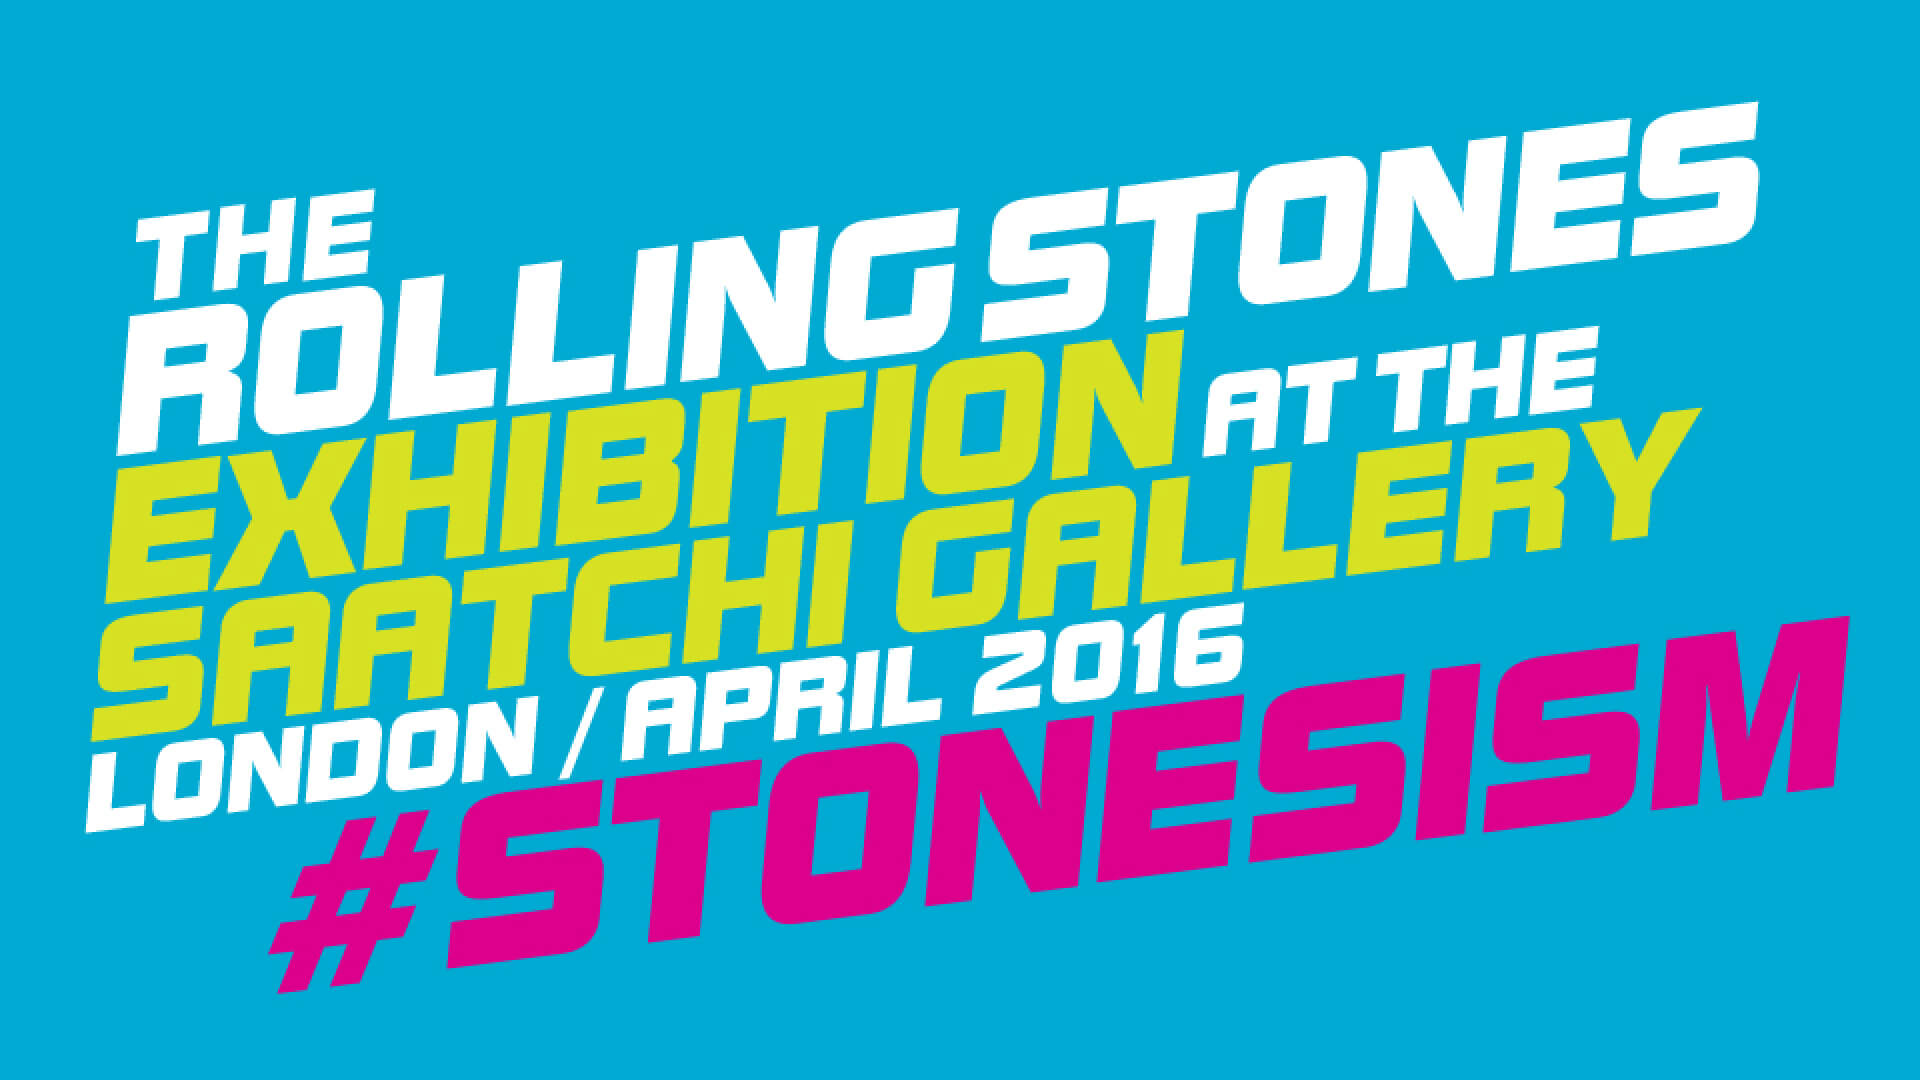 rolling stones exhibitionism messaging communications design